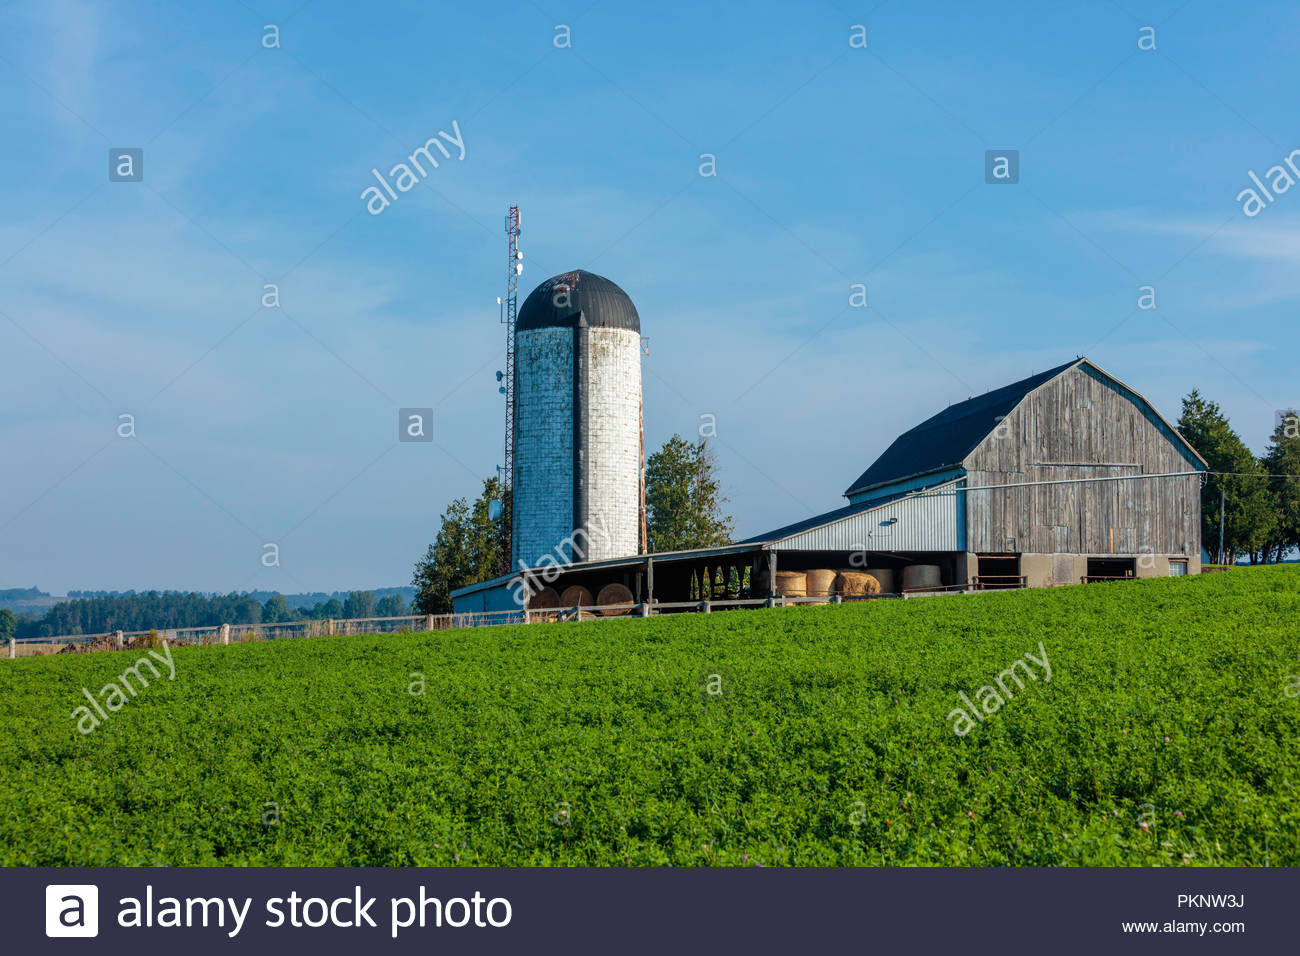 Grain storage silo and timber framed barn with lean-to addition storing fodder near Bowmanville Ontario Canada - Stock Image